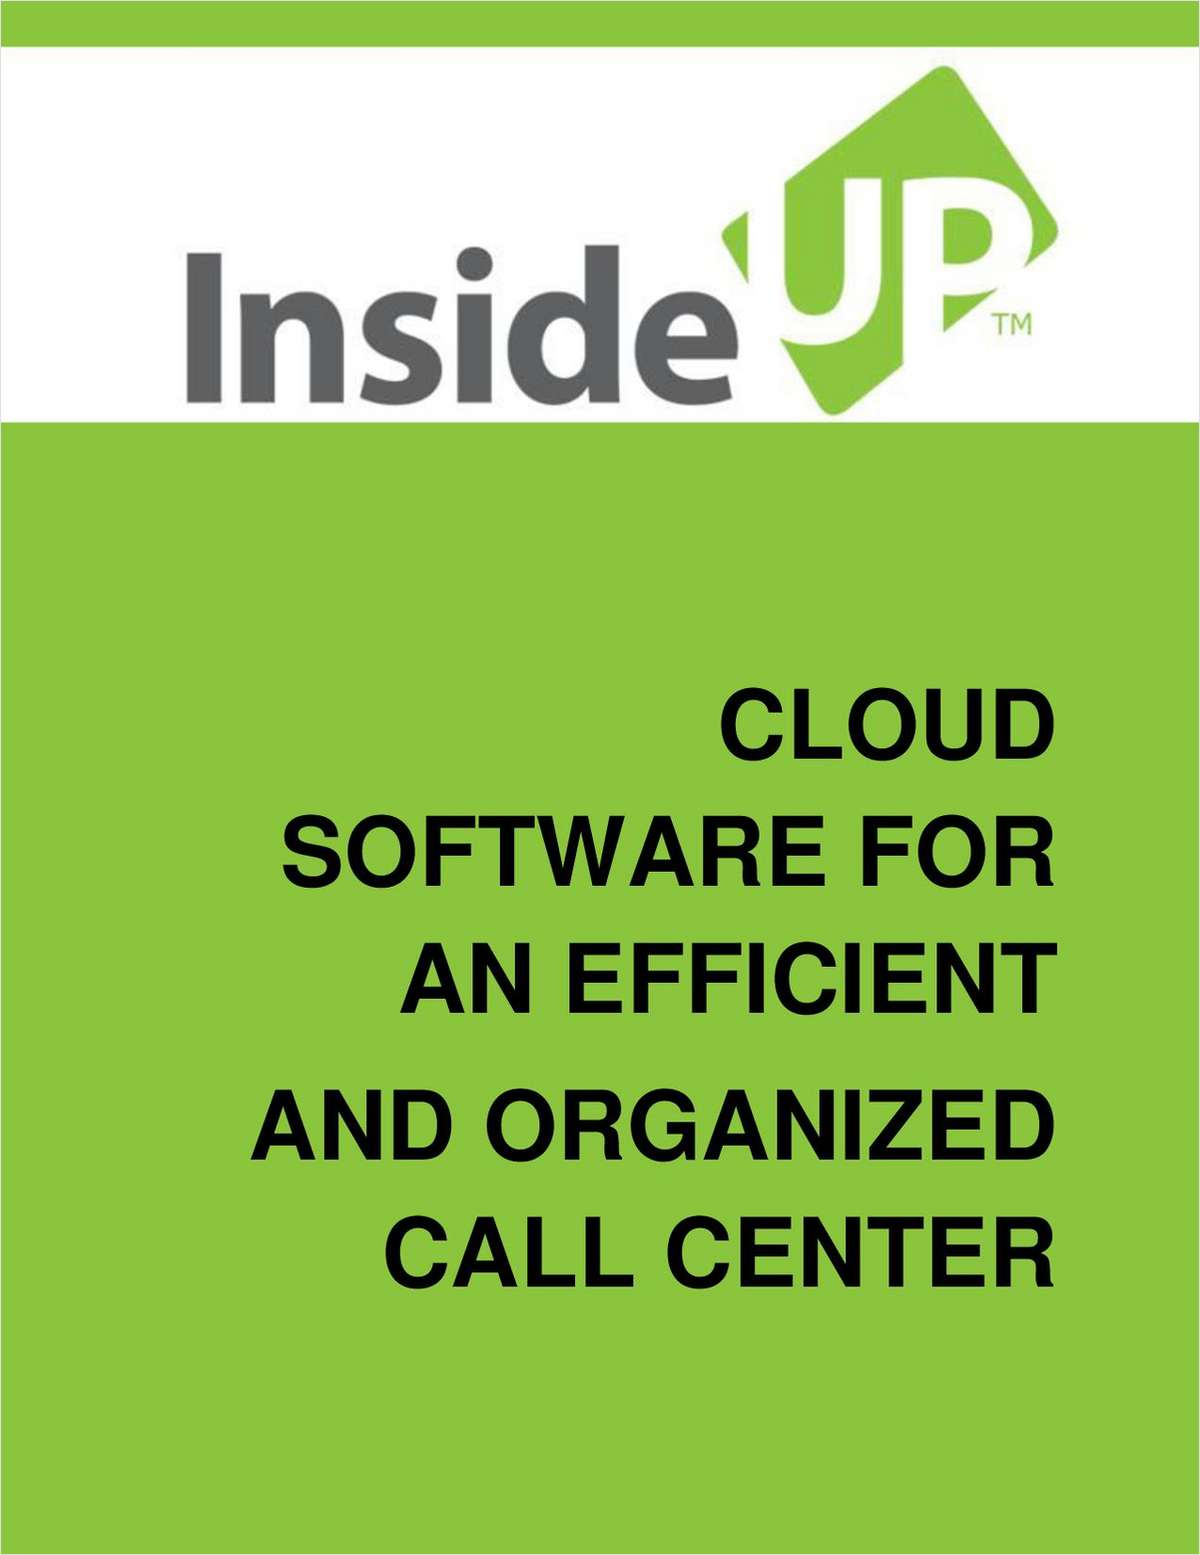 Cloud Software For An Efficient and Organized Call Center